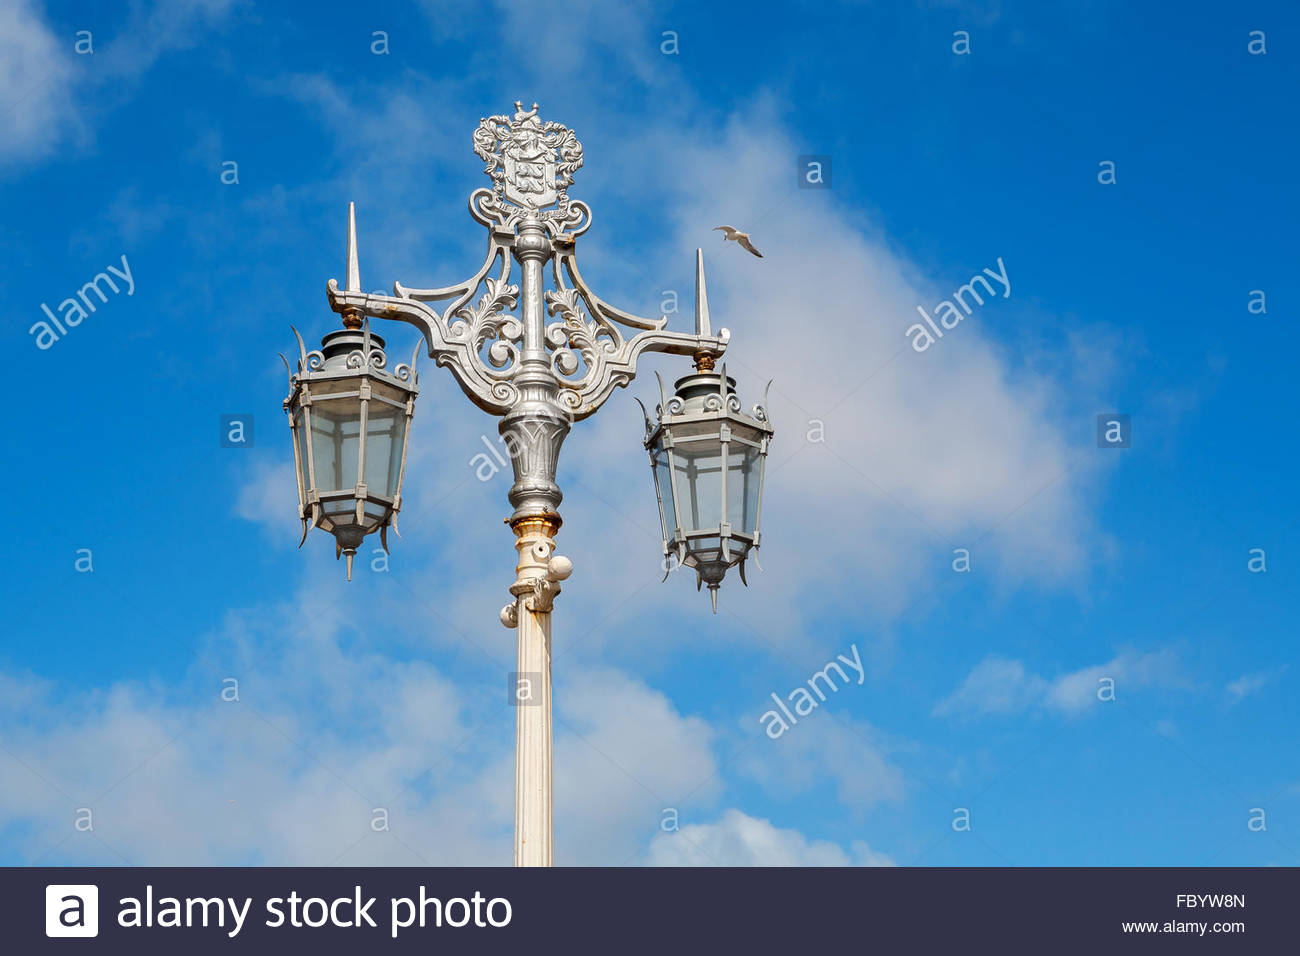 Old street lamp. Brighton, England - Stock Image